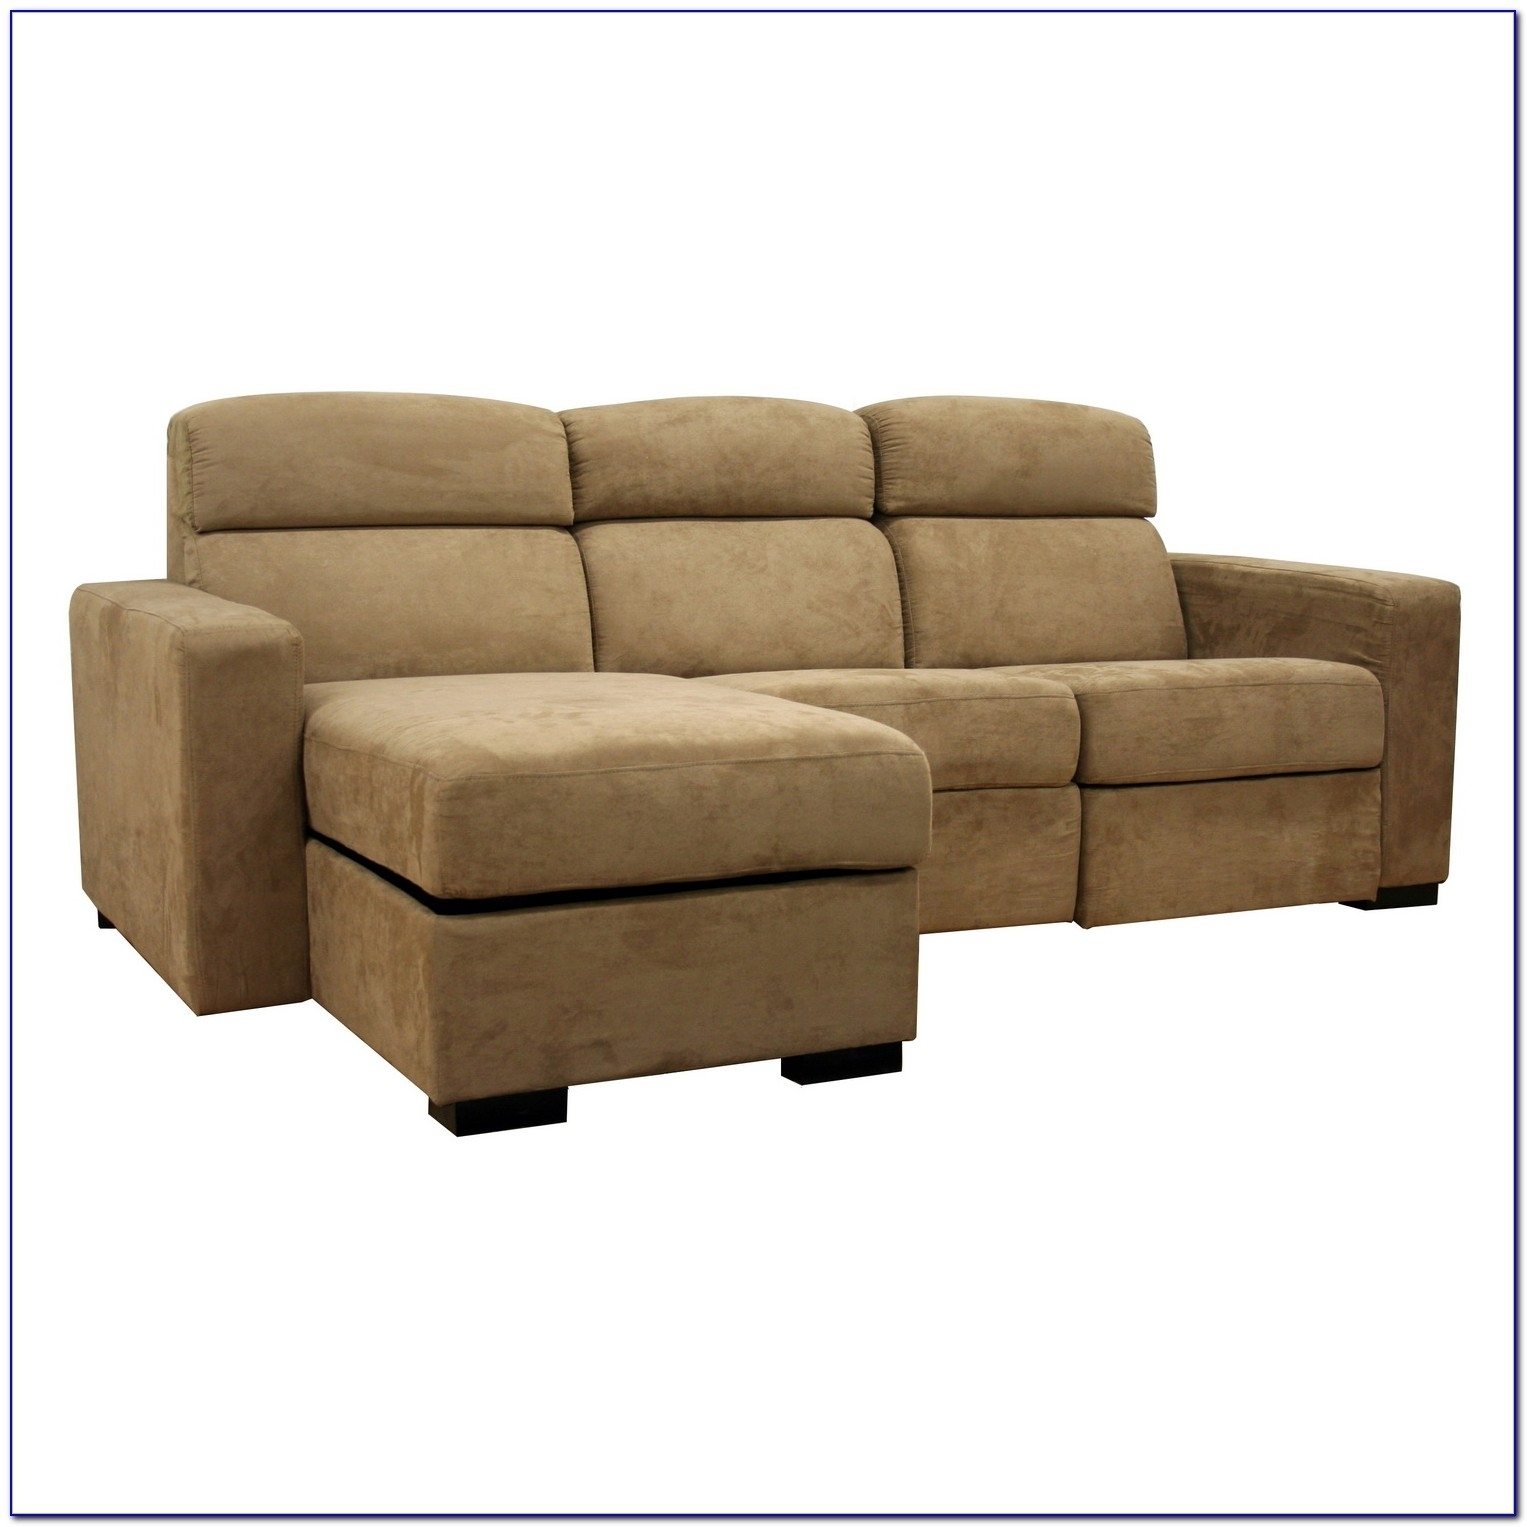 Bowen Sectional Sleeper Sofa With Left Side Chaise Lounge | Http Intended For Salt Lake City Sectional Sofas (Image 2 of 10)